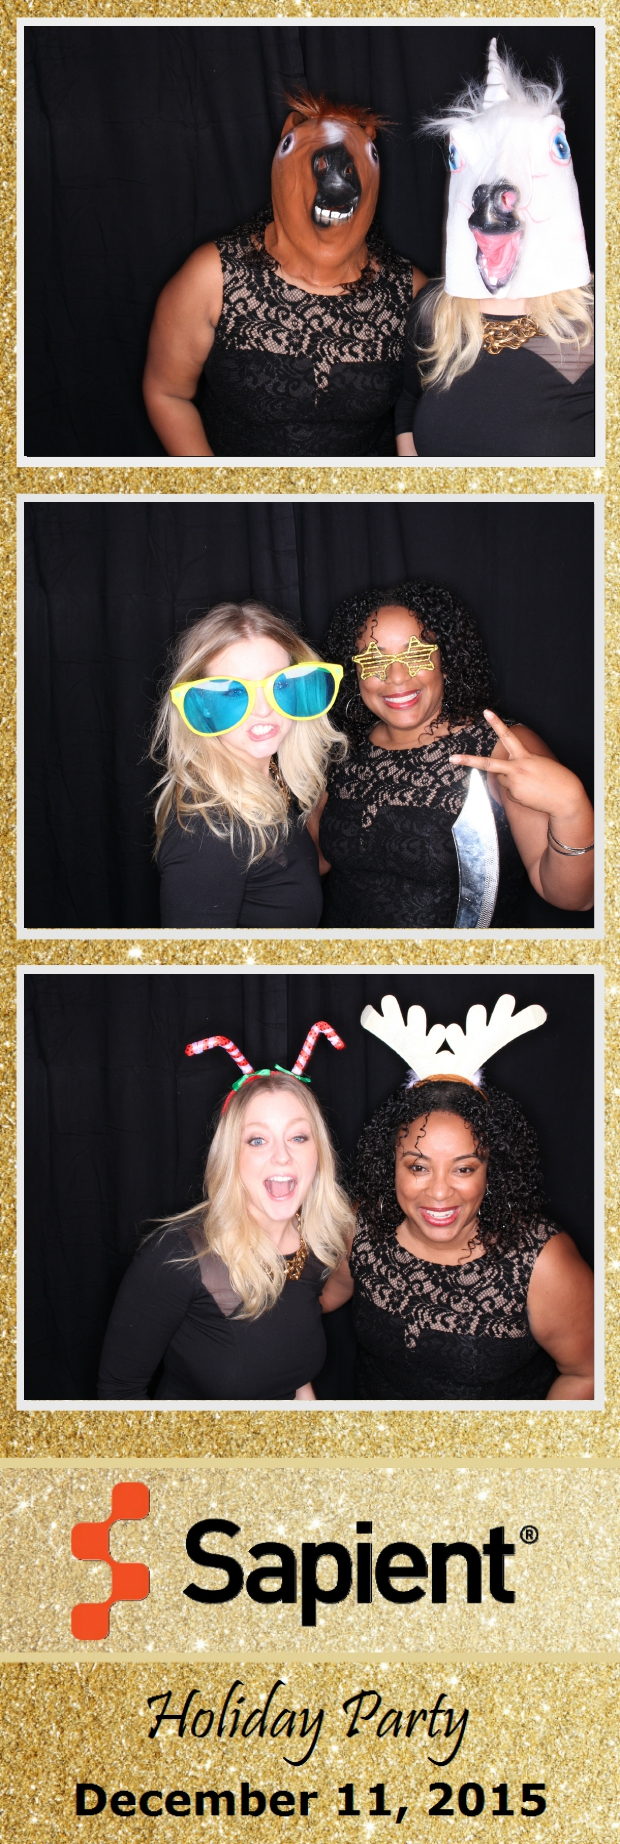 Guest House Events Photo Booth Sapient Holiday Party (1).jpg